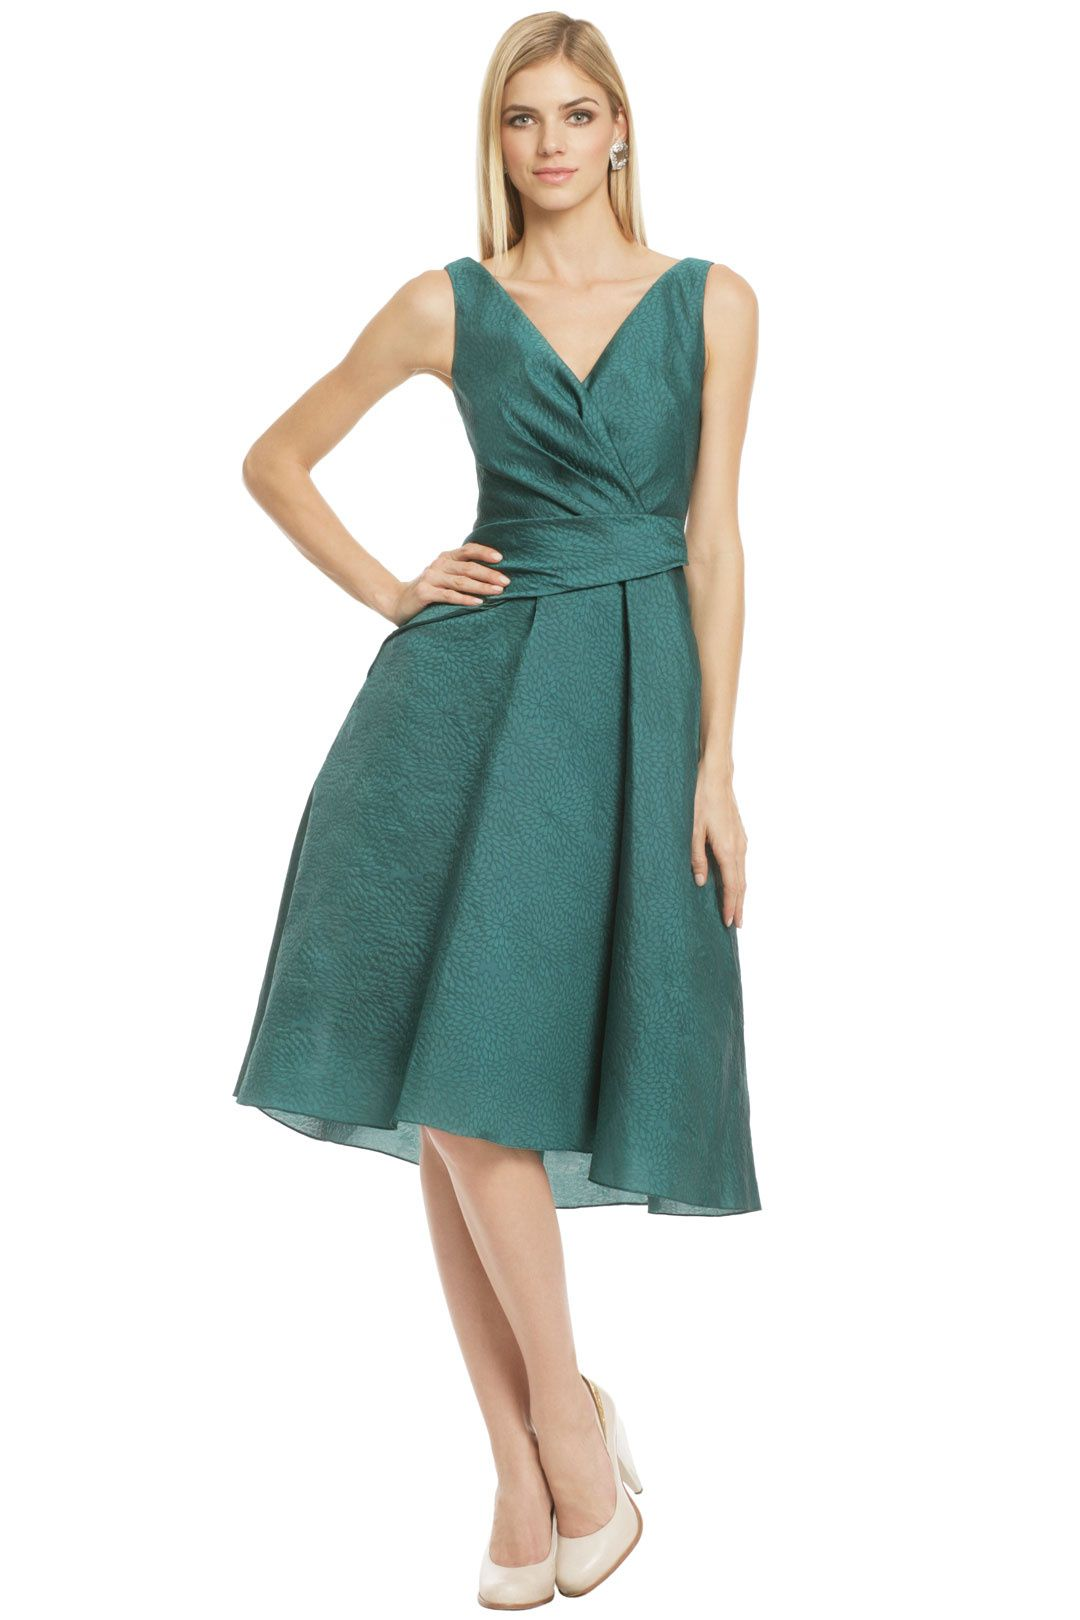 green dresses for wedding elegant dresses for wedding 17 best images about pre wedding planning on pinterest trumpet wedding gowns wedding and wedding makeup